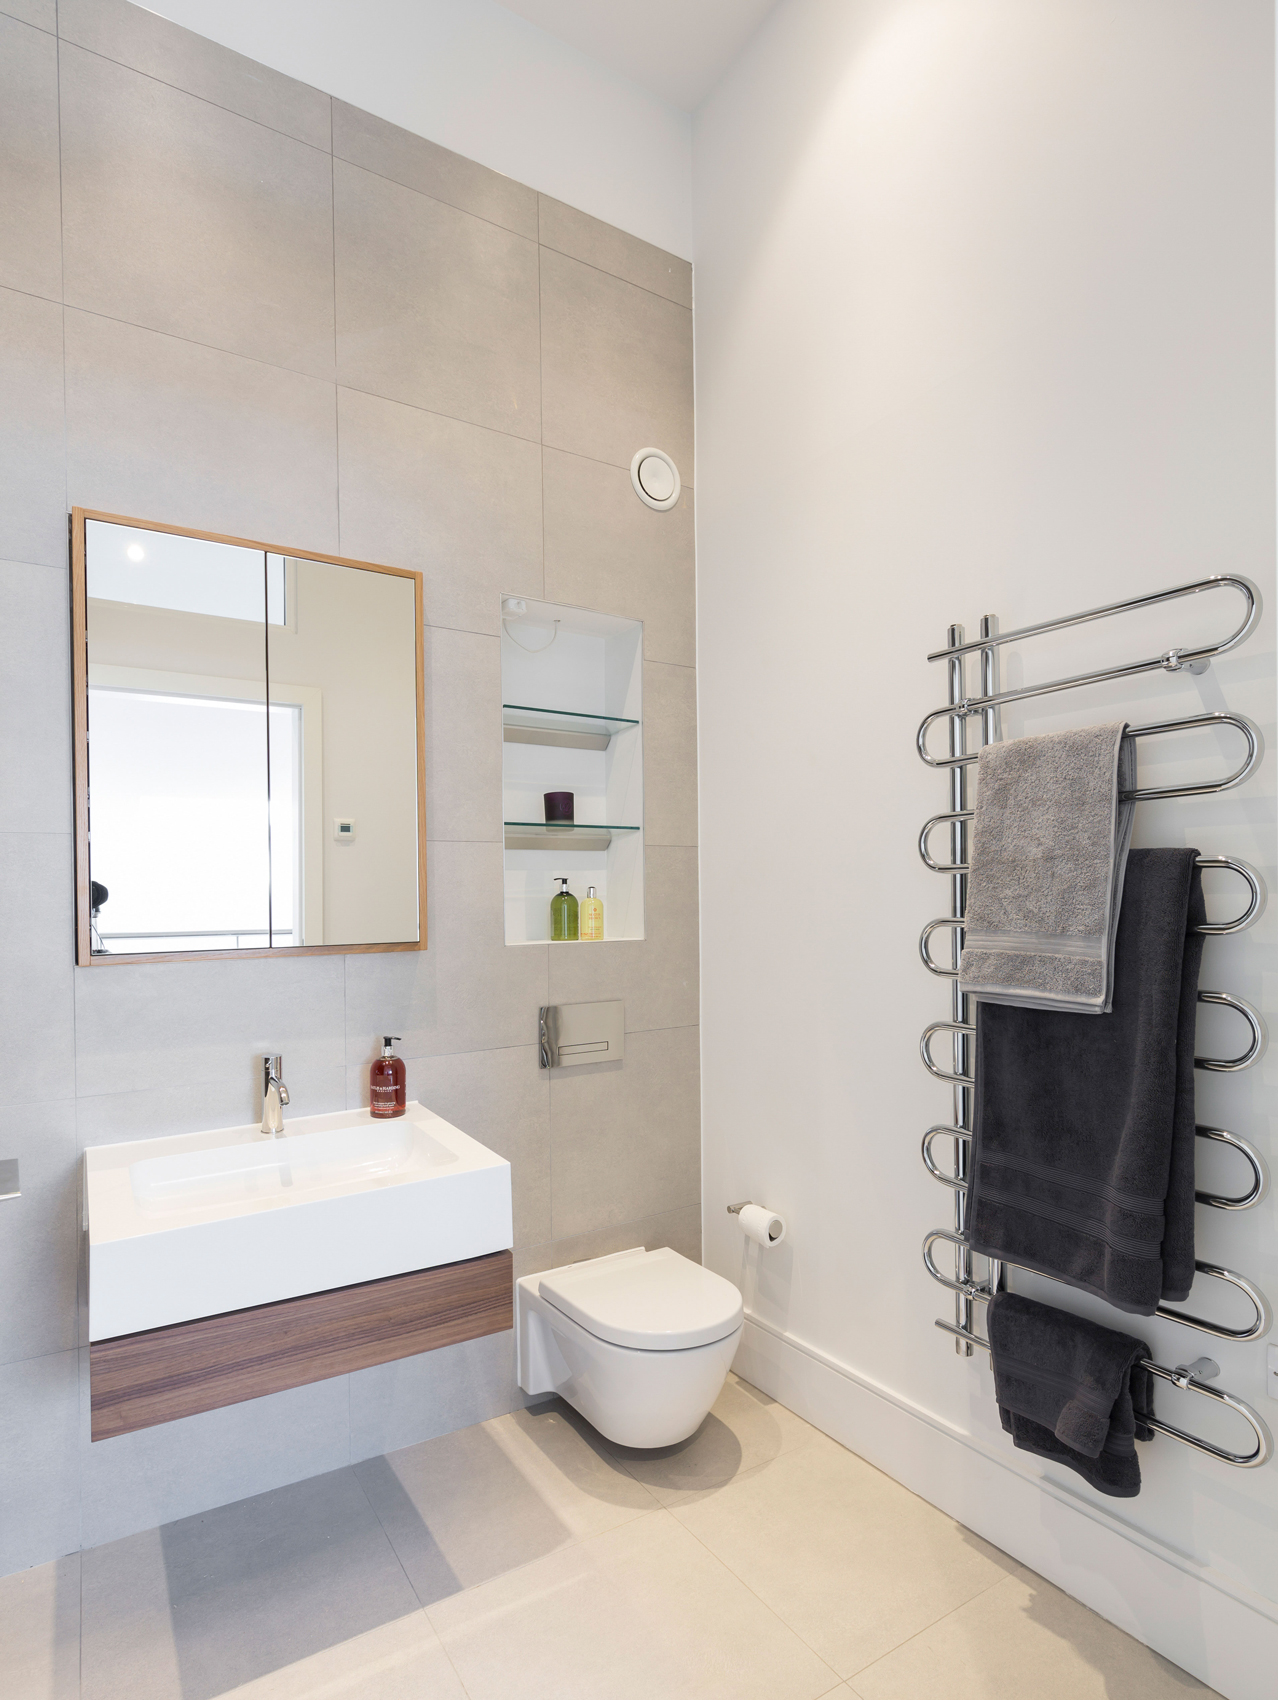 luxury bathroom with recessed shelving and white porcelain bespoke flush mirrored cabinet designed by Element Studios